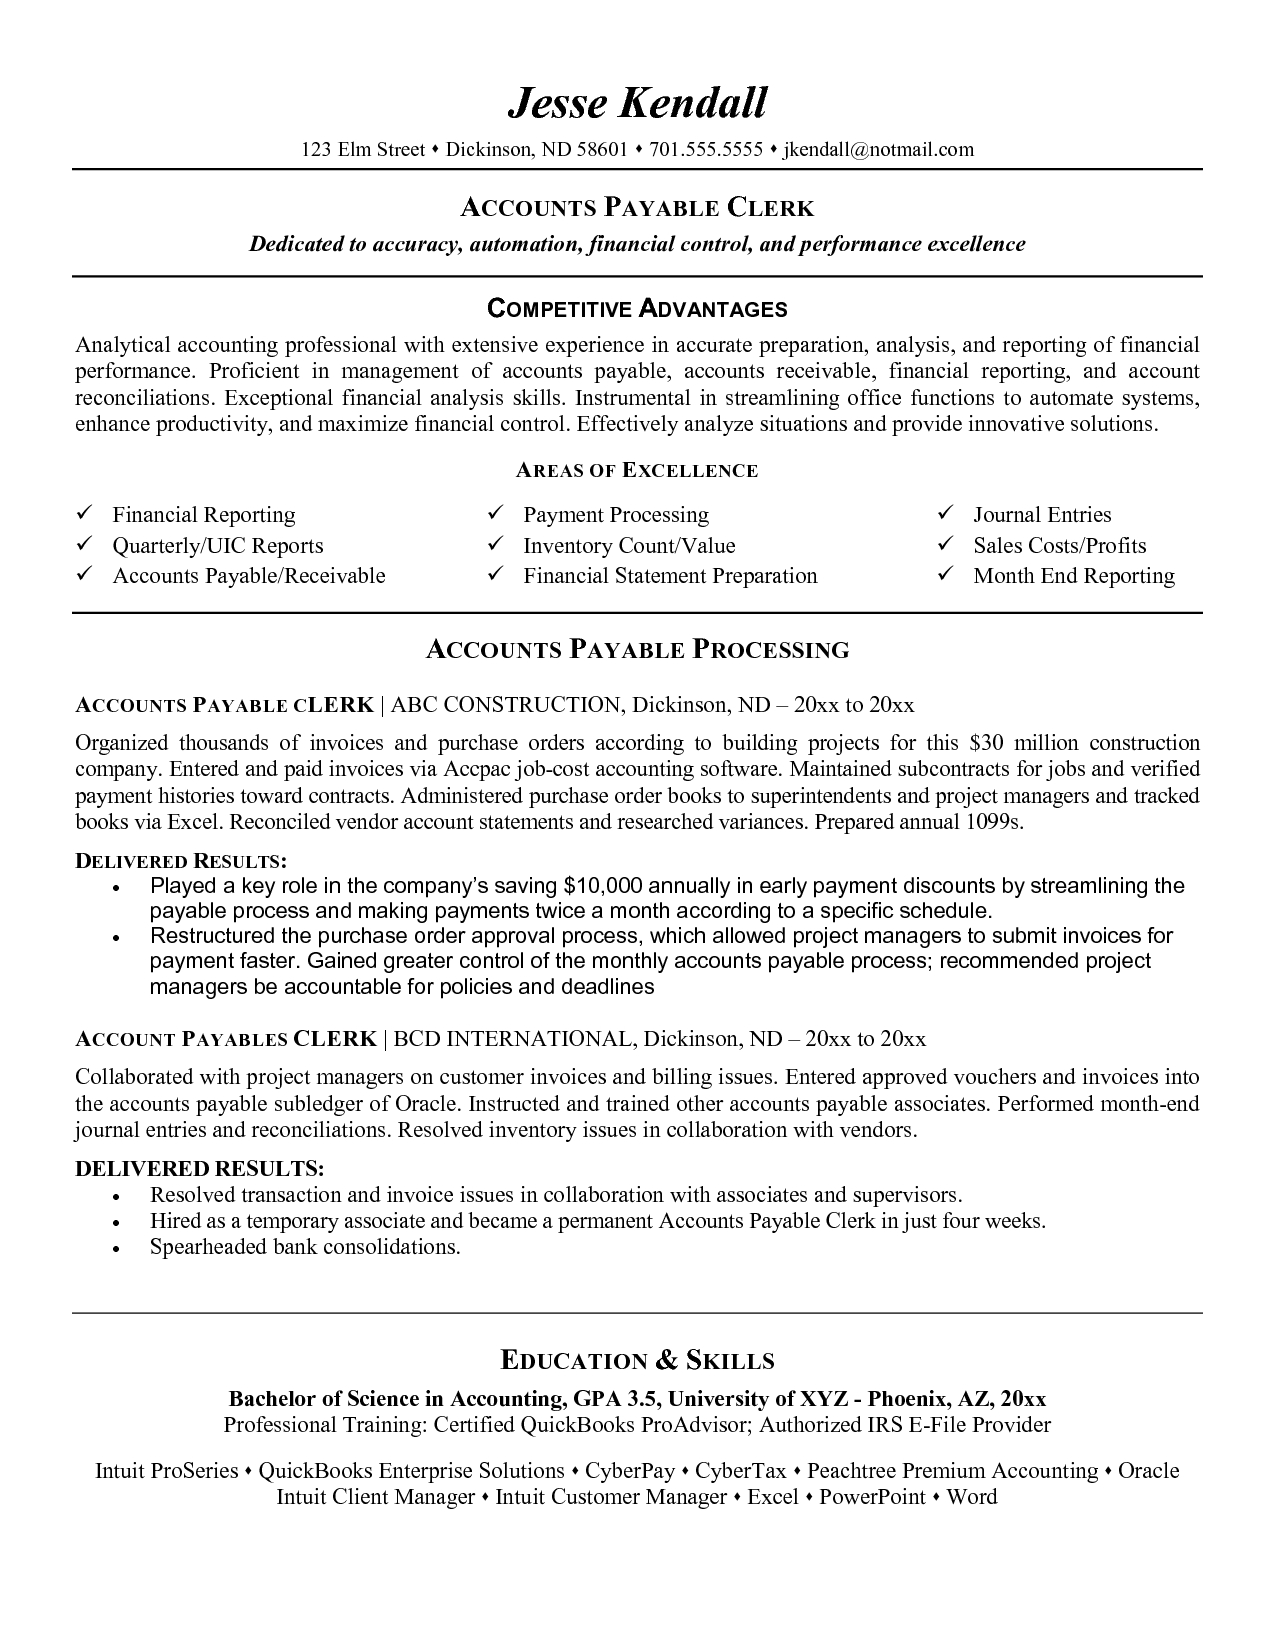 Clerical Cover Letter Template - Walgreens Service Clerk Application Letters Samples Cover Letter